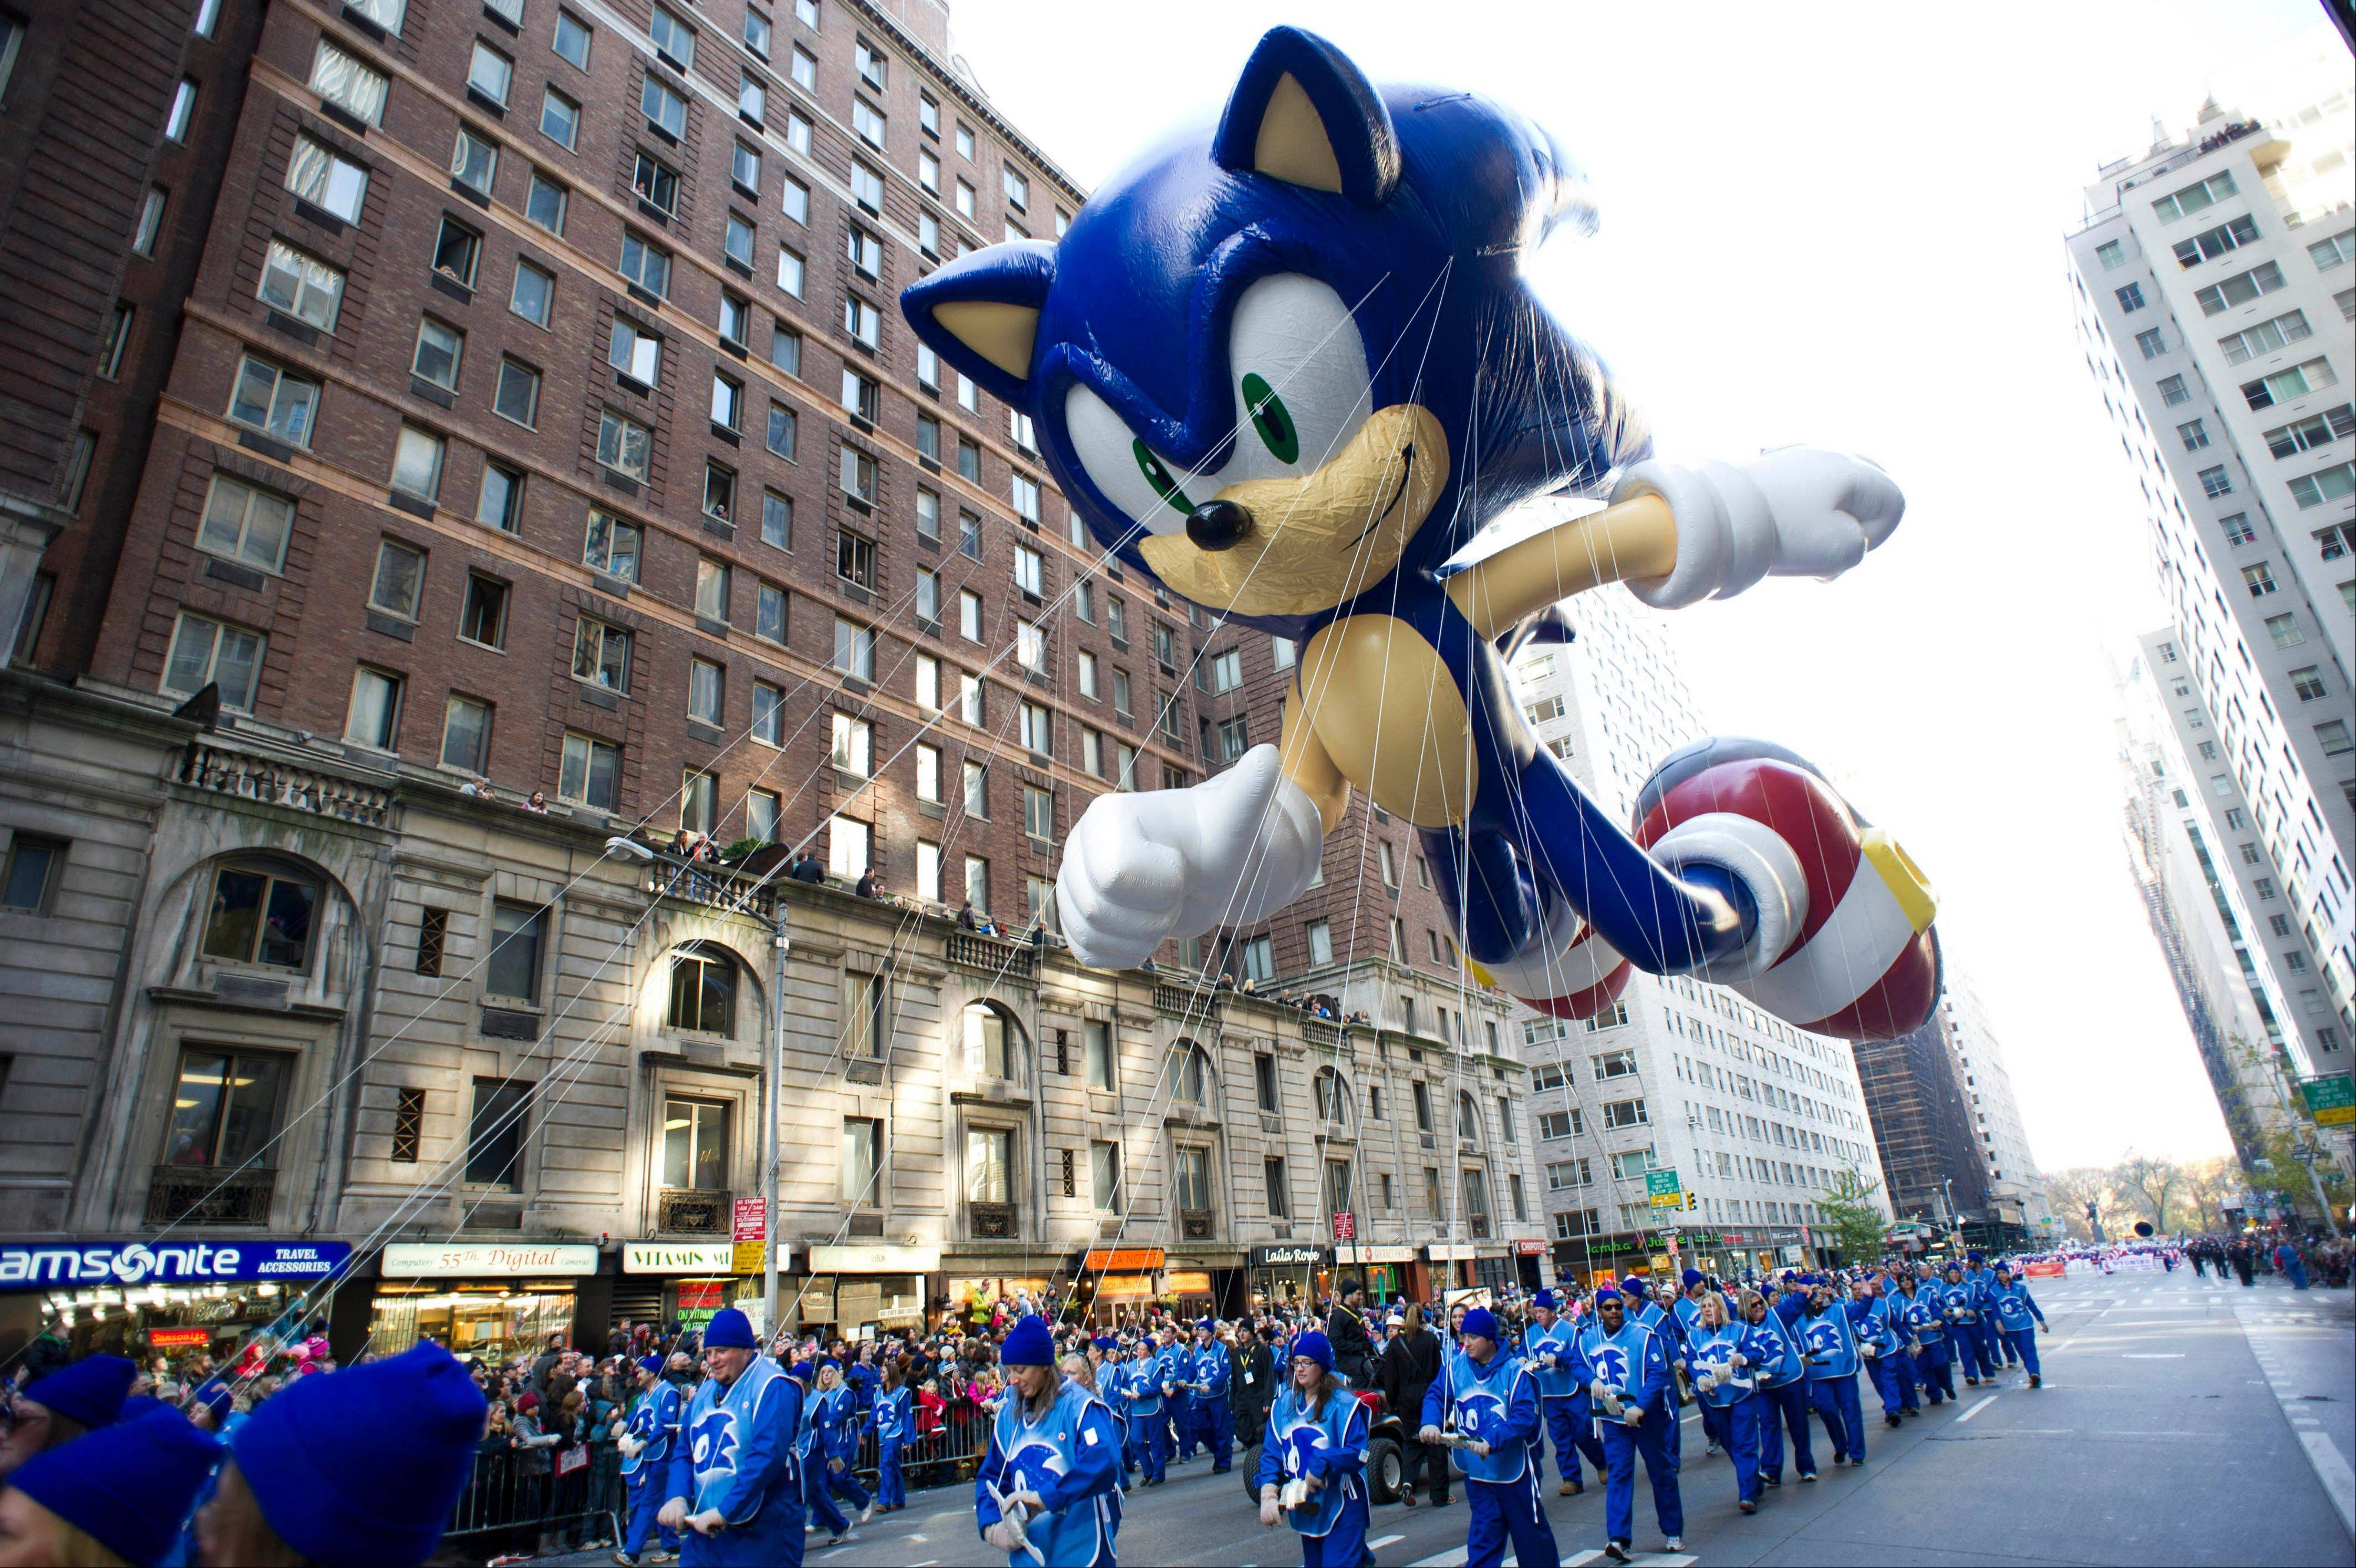 Macy's says it is closely monitoring the weather after recent forecasts predicted wind gusts up to 30 mph on Thanksgiving morning during the department store's upcoming Thanksgiving Day Parade. Based on New York City guidelines, no giant balloons will be operated if the wind gusts exceed 34 mph.